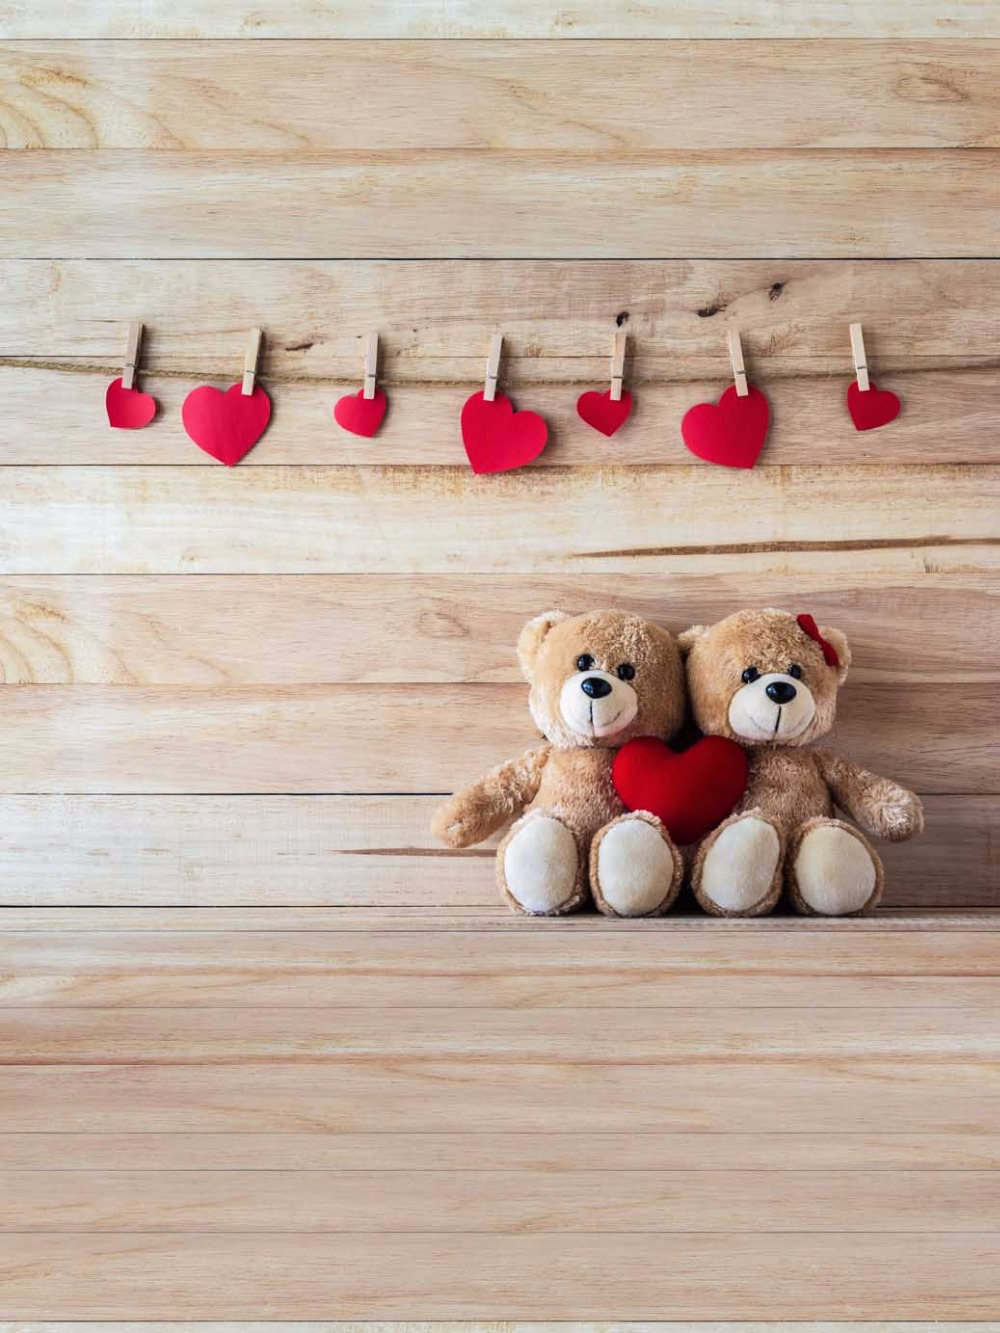 Wood Photography Backdrop 5x7 Small Red Heart Teddy Bear Background for Kids Birth Party  Photography Photo Booth for Newborn<br><br>Aliexpress